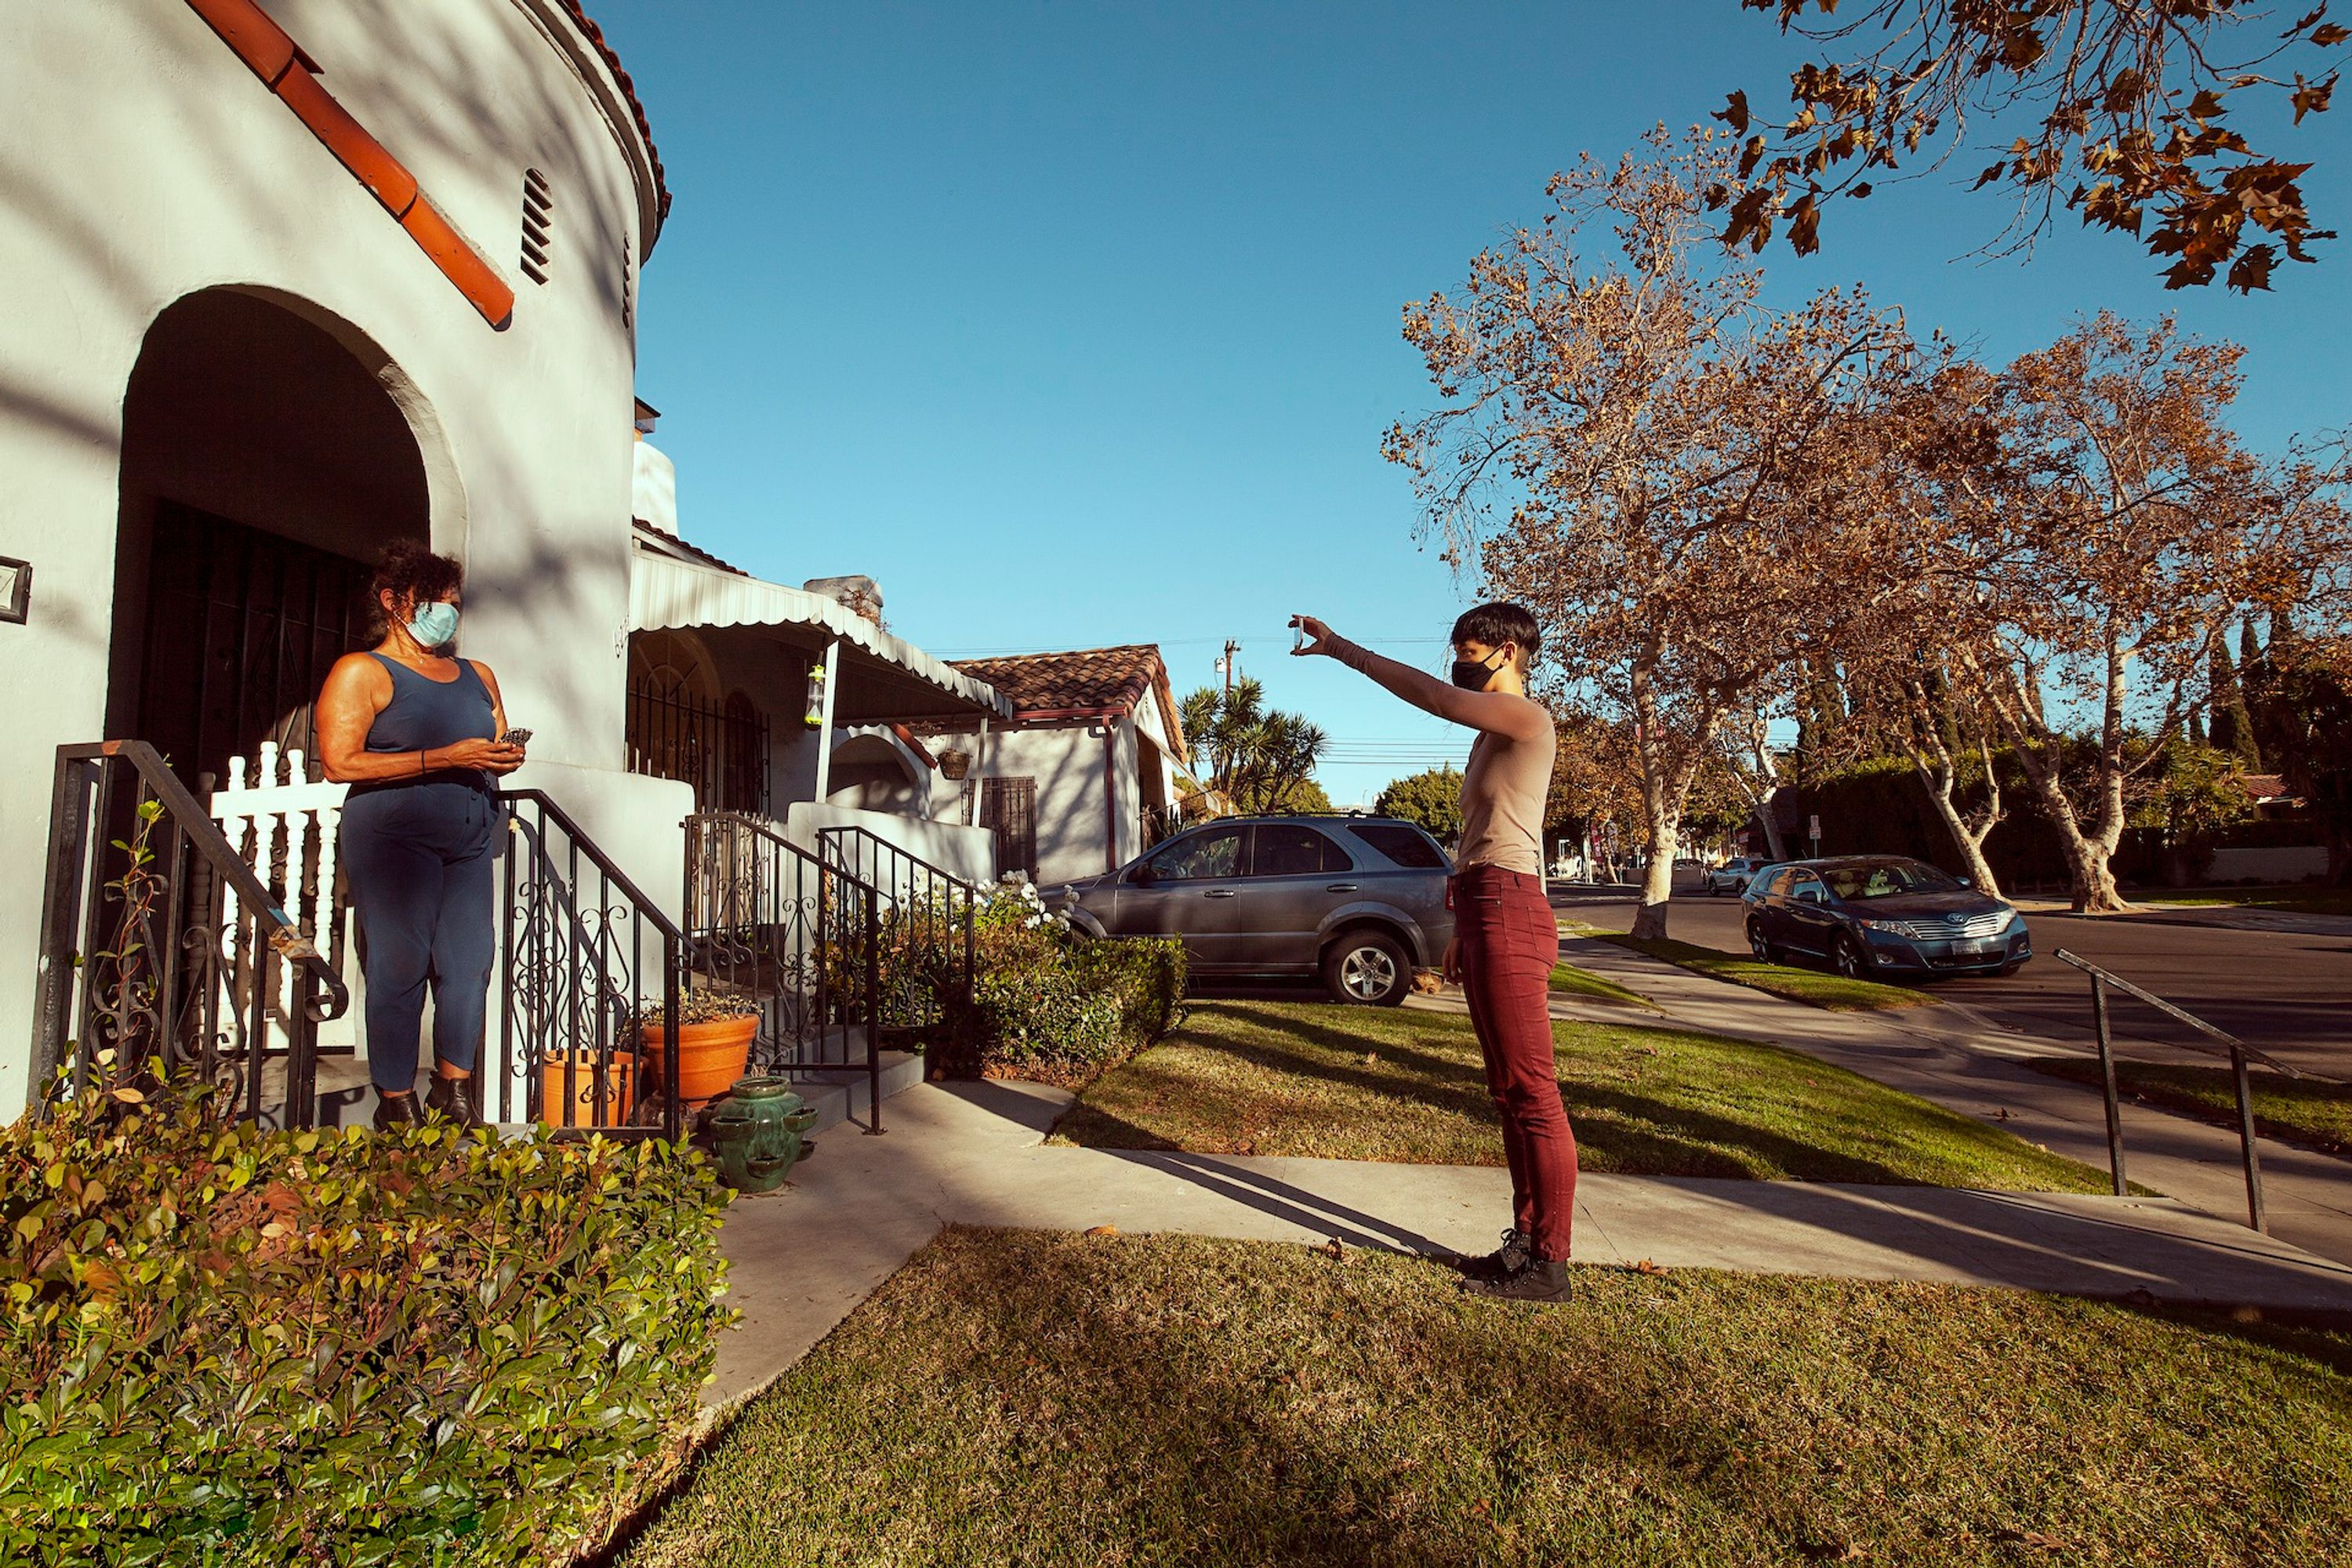 The artist wears red pants and a beige shirt, and stands up straight while holding up her smartphone with an outstretched arm. She faces a residential house, where a woman in a blue tank top stands in the entryway to what appears to be her home. The two women face each other, with a blue sky in the background.